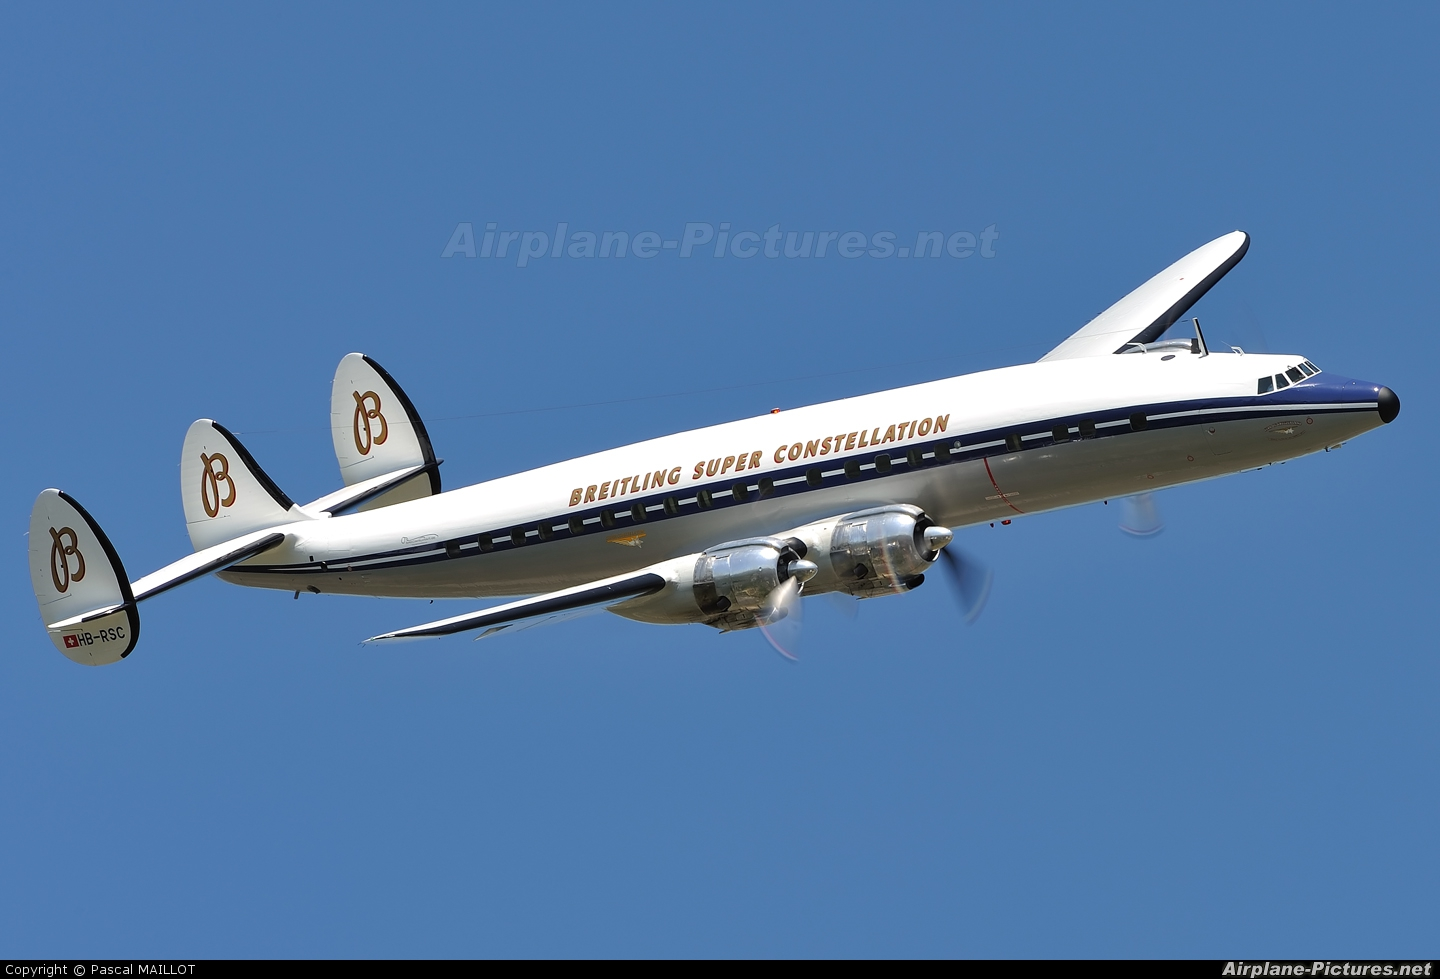 Super Constellation Flyers HB-RSC aircraft at Paris - Le Bourget